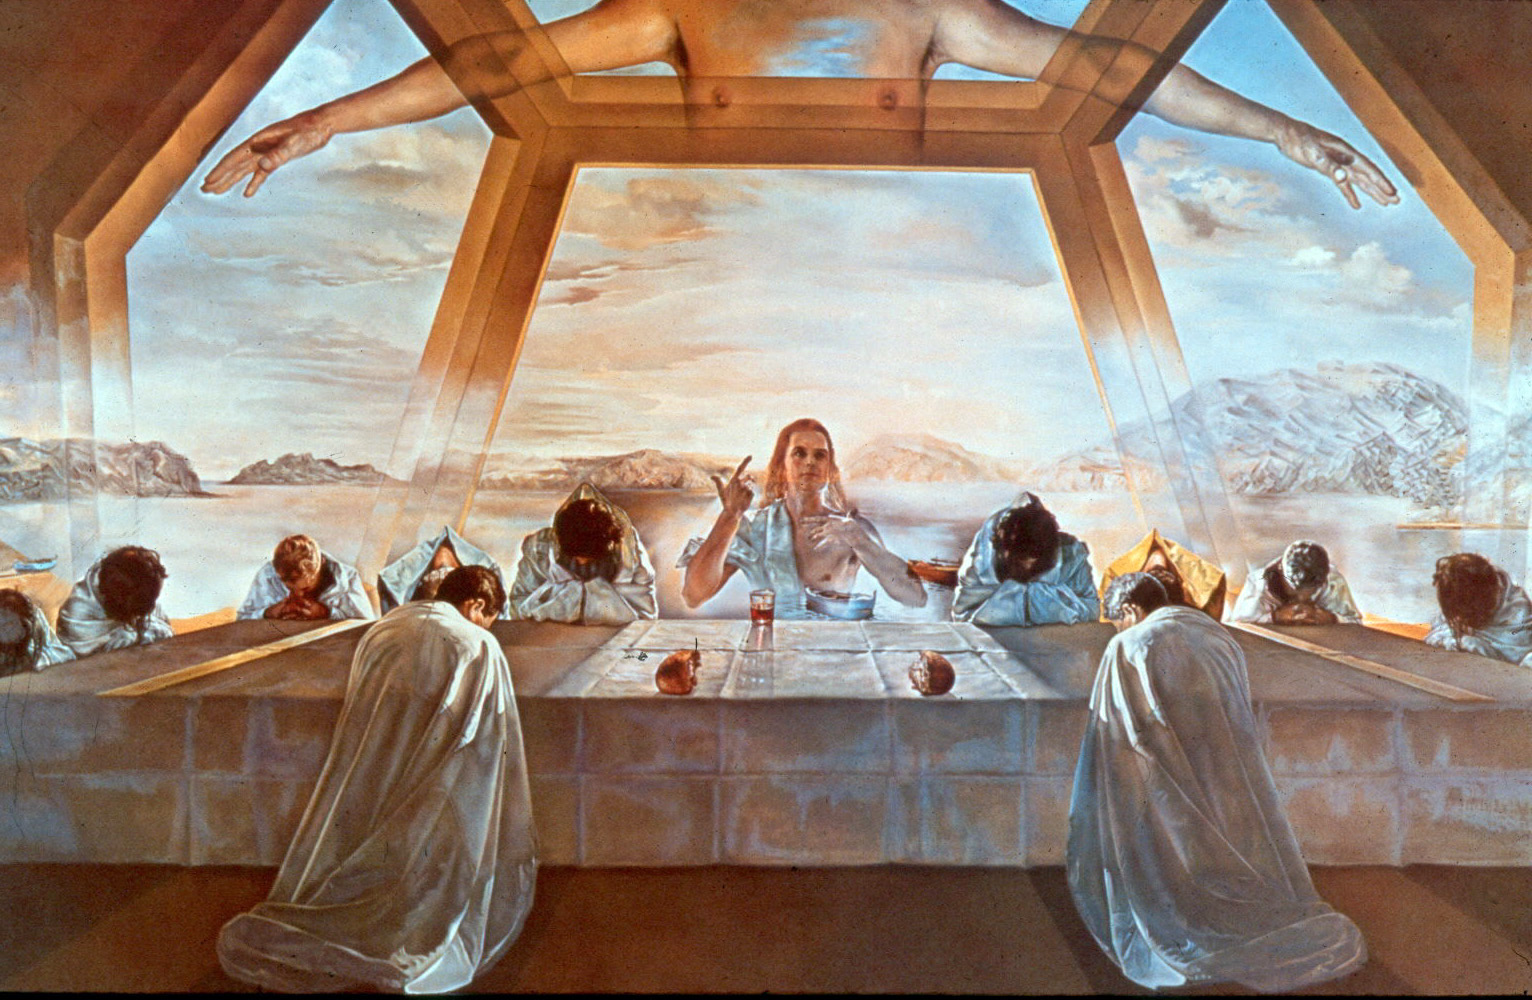 http://3.bp.blogspot.com/-vKVBjUhFDpI/TwzQ4HKws0I/AAAAAAAAAC4/aylOthdMoq4/s1600/dali-sacrament-of-the-last-supper-1955.jpg